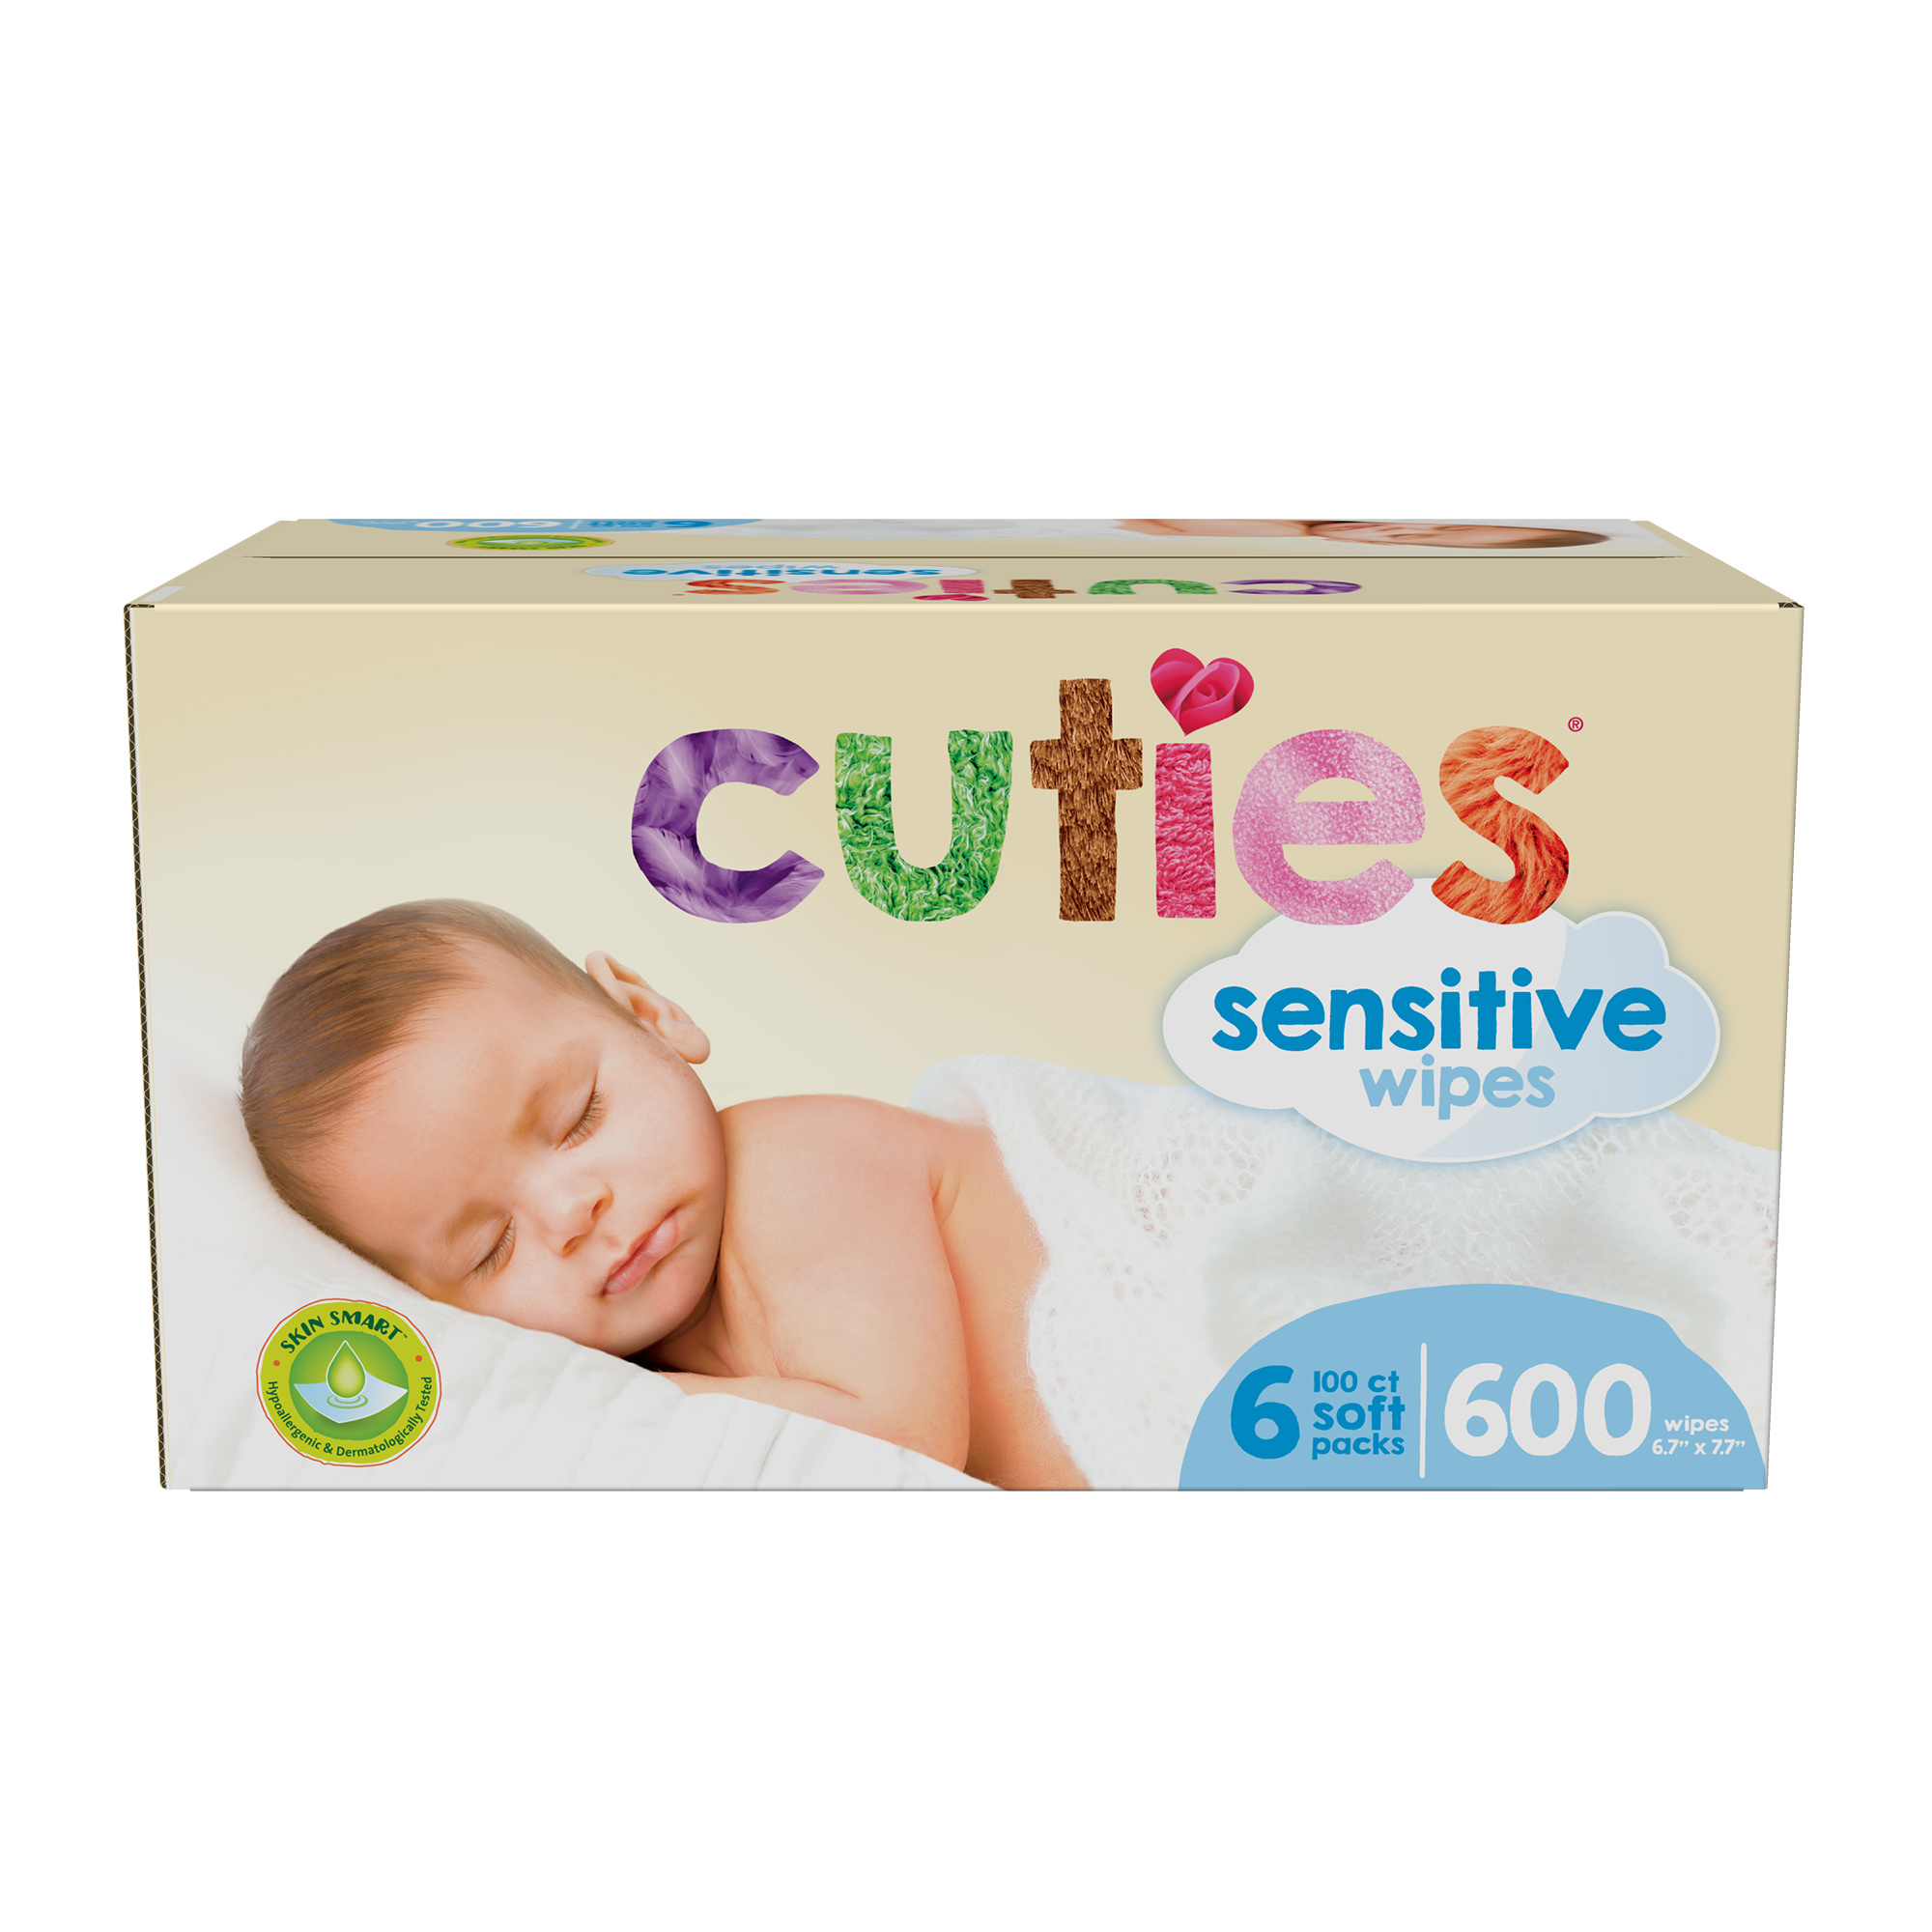 Cuties Complete Care Sensitive Baby Wipes, 600 Count